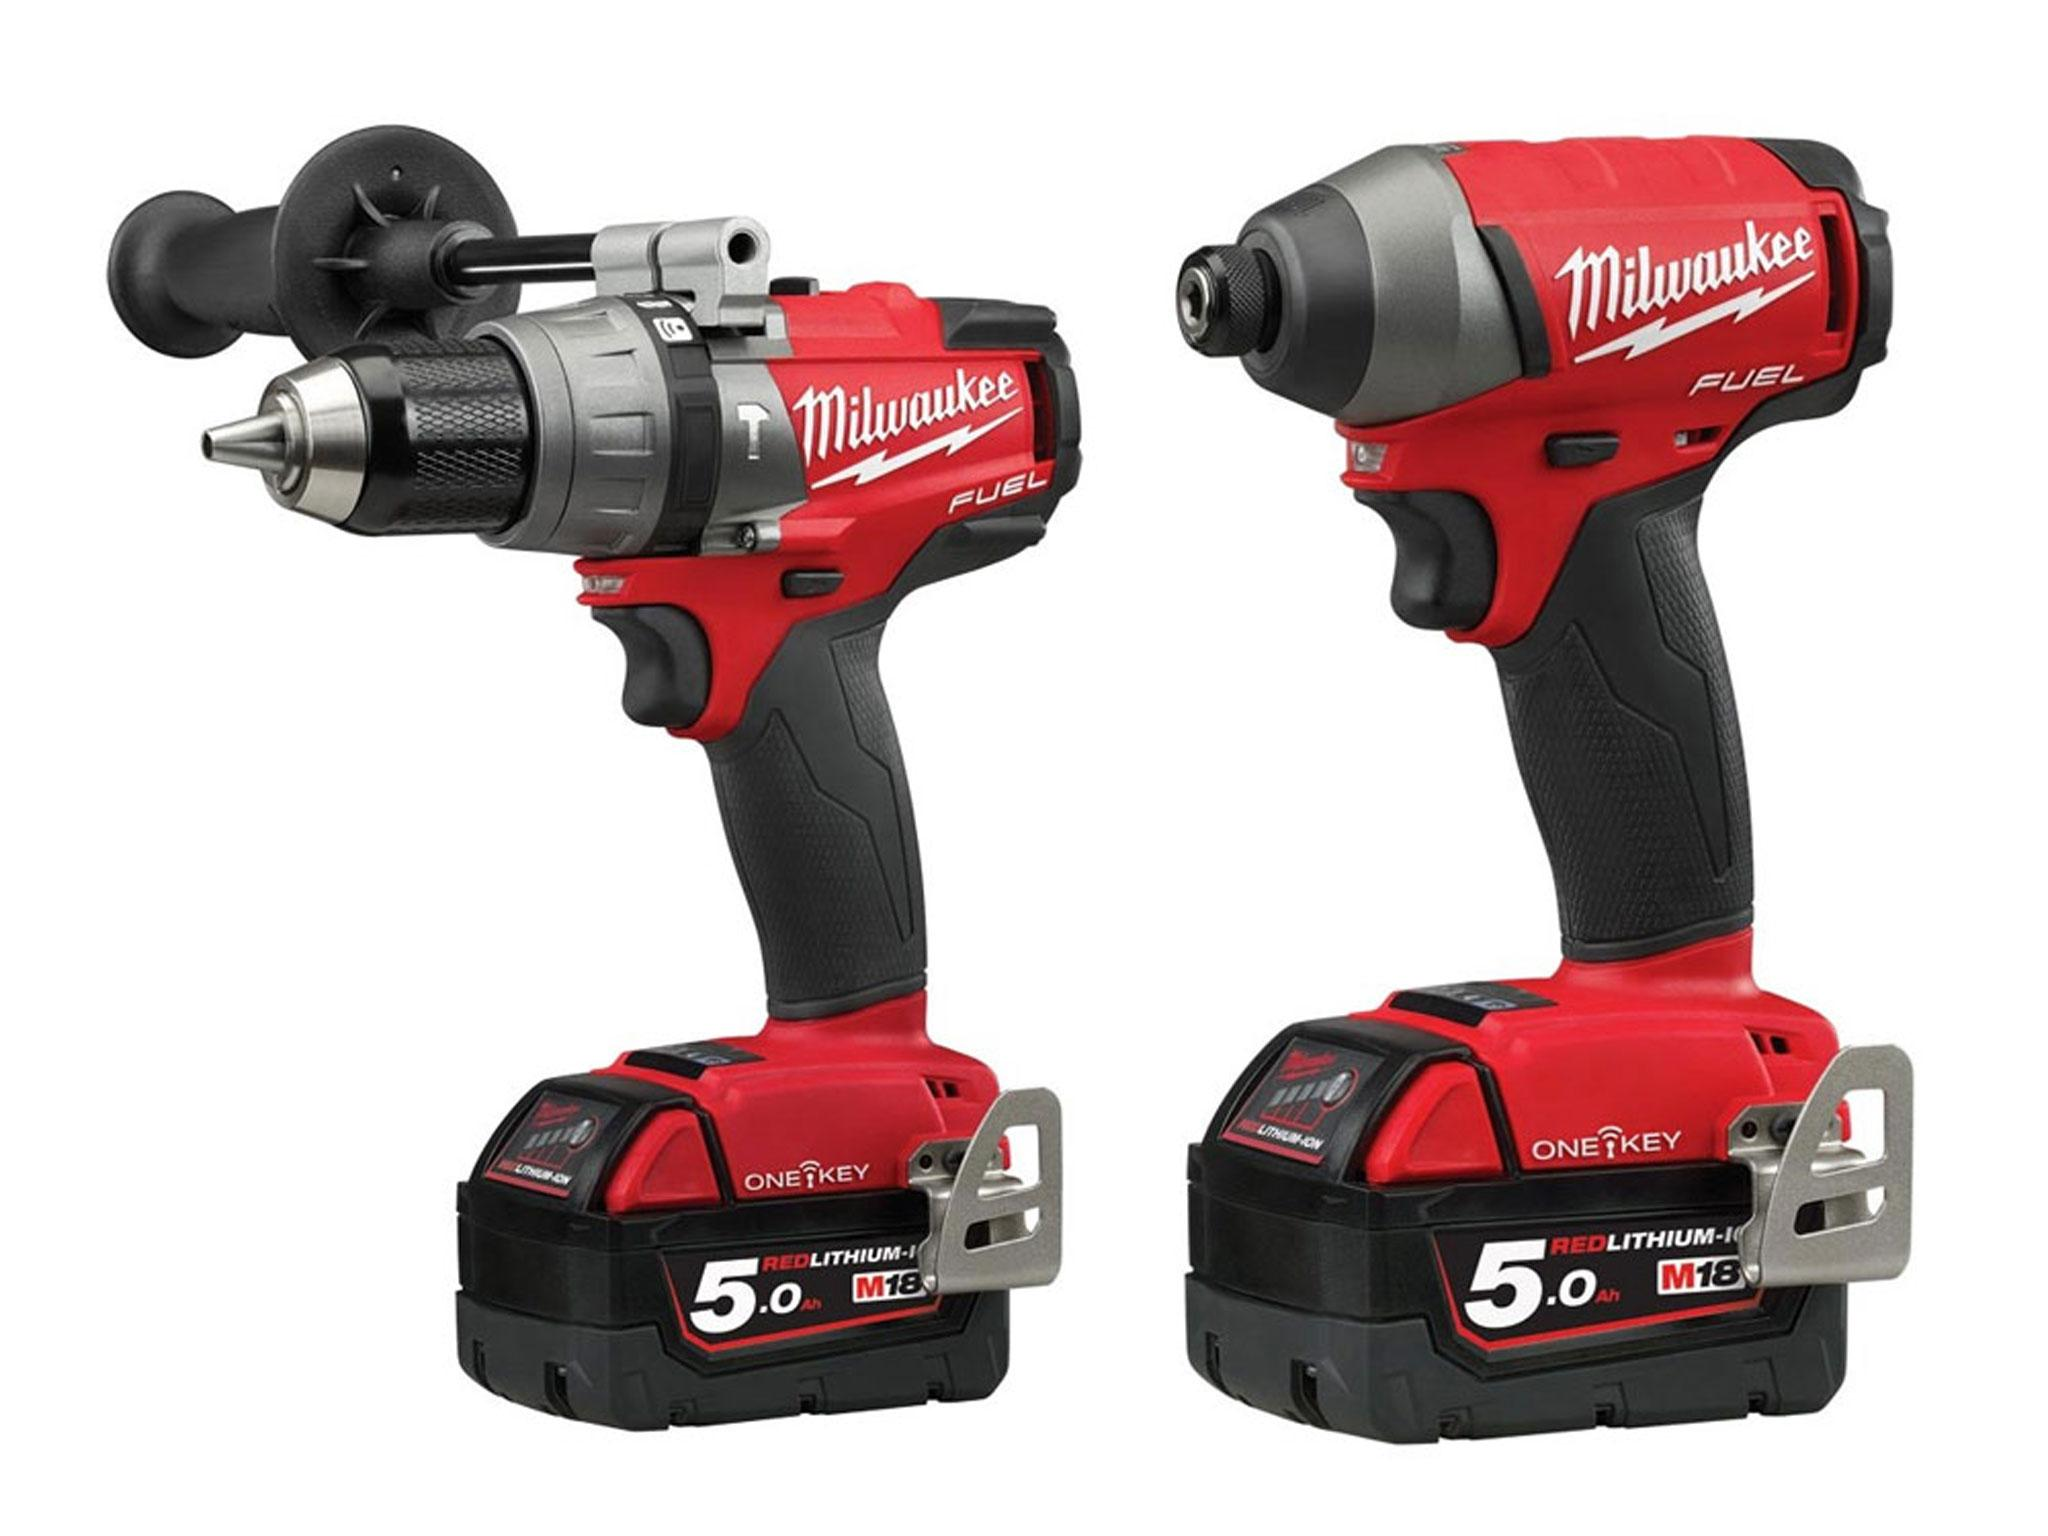 Cordless Drill: reviews, review, rating, advice on choosing 21